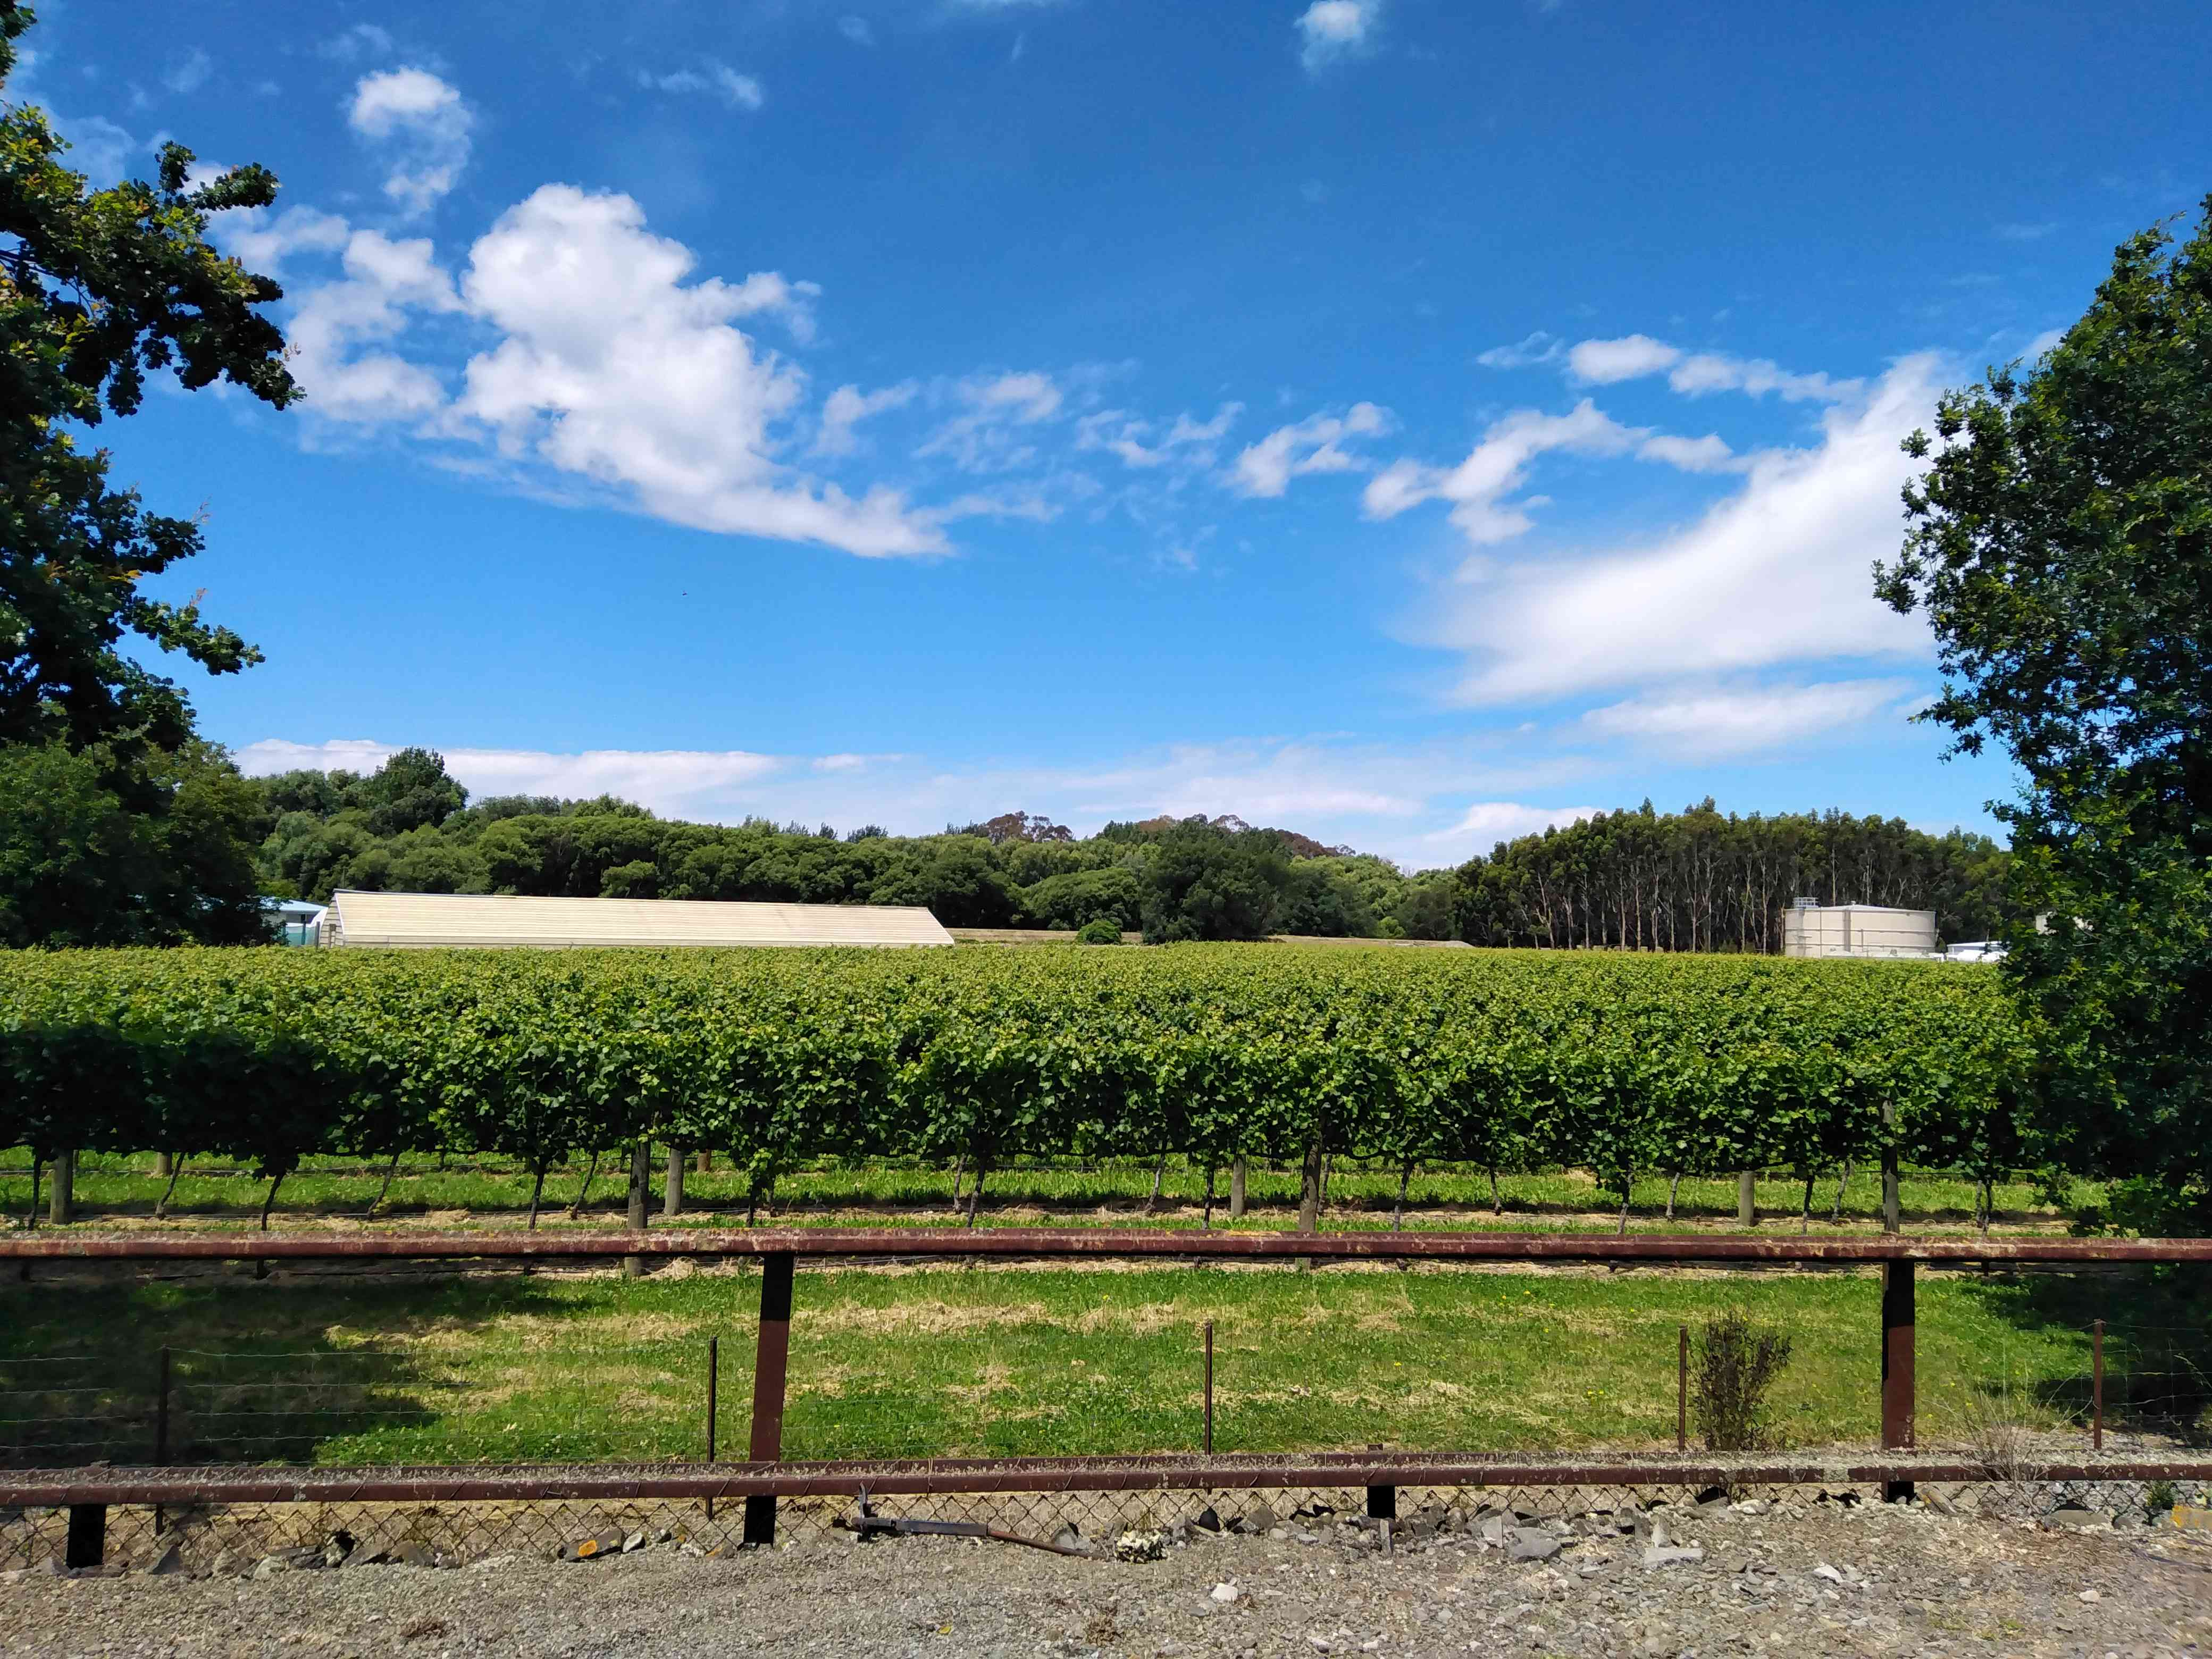 green vineyards in a field with blue sky above